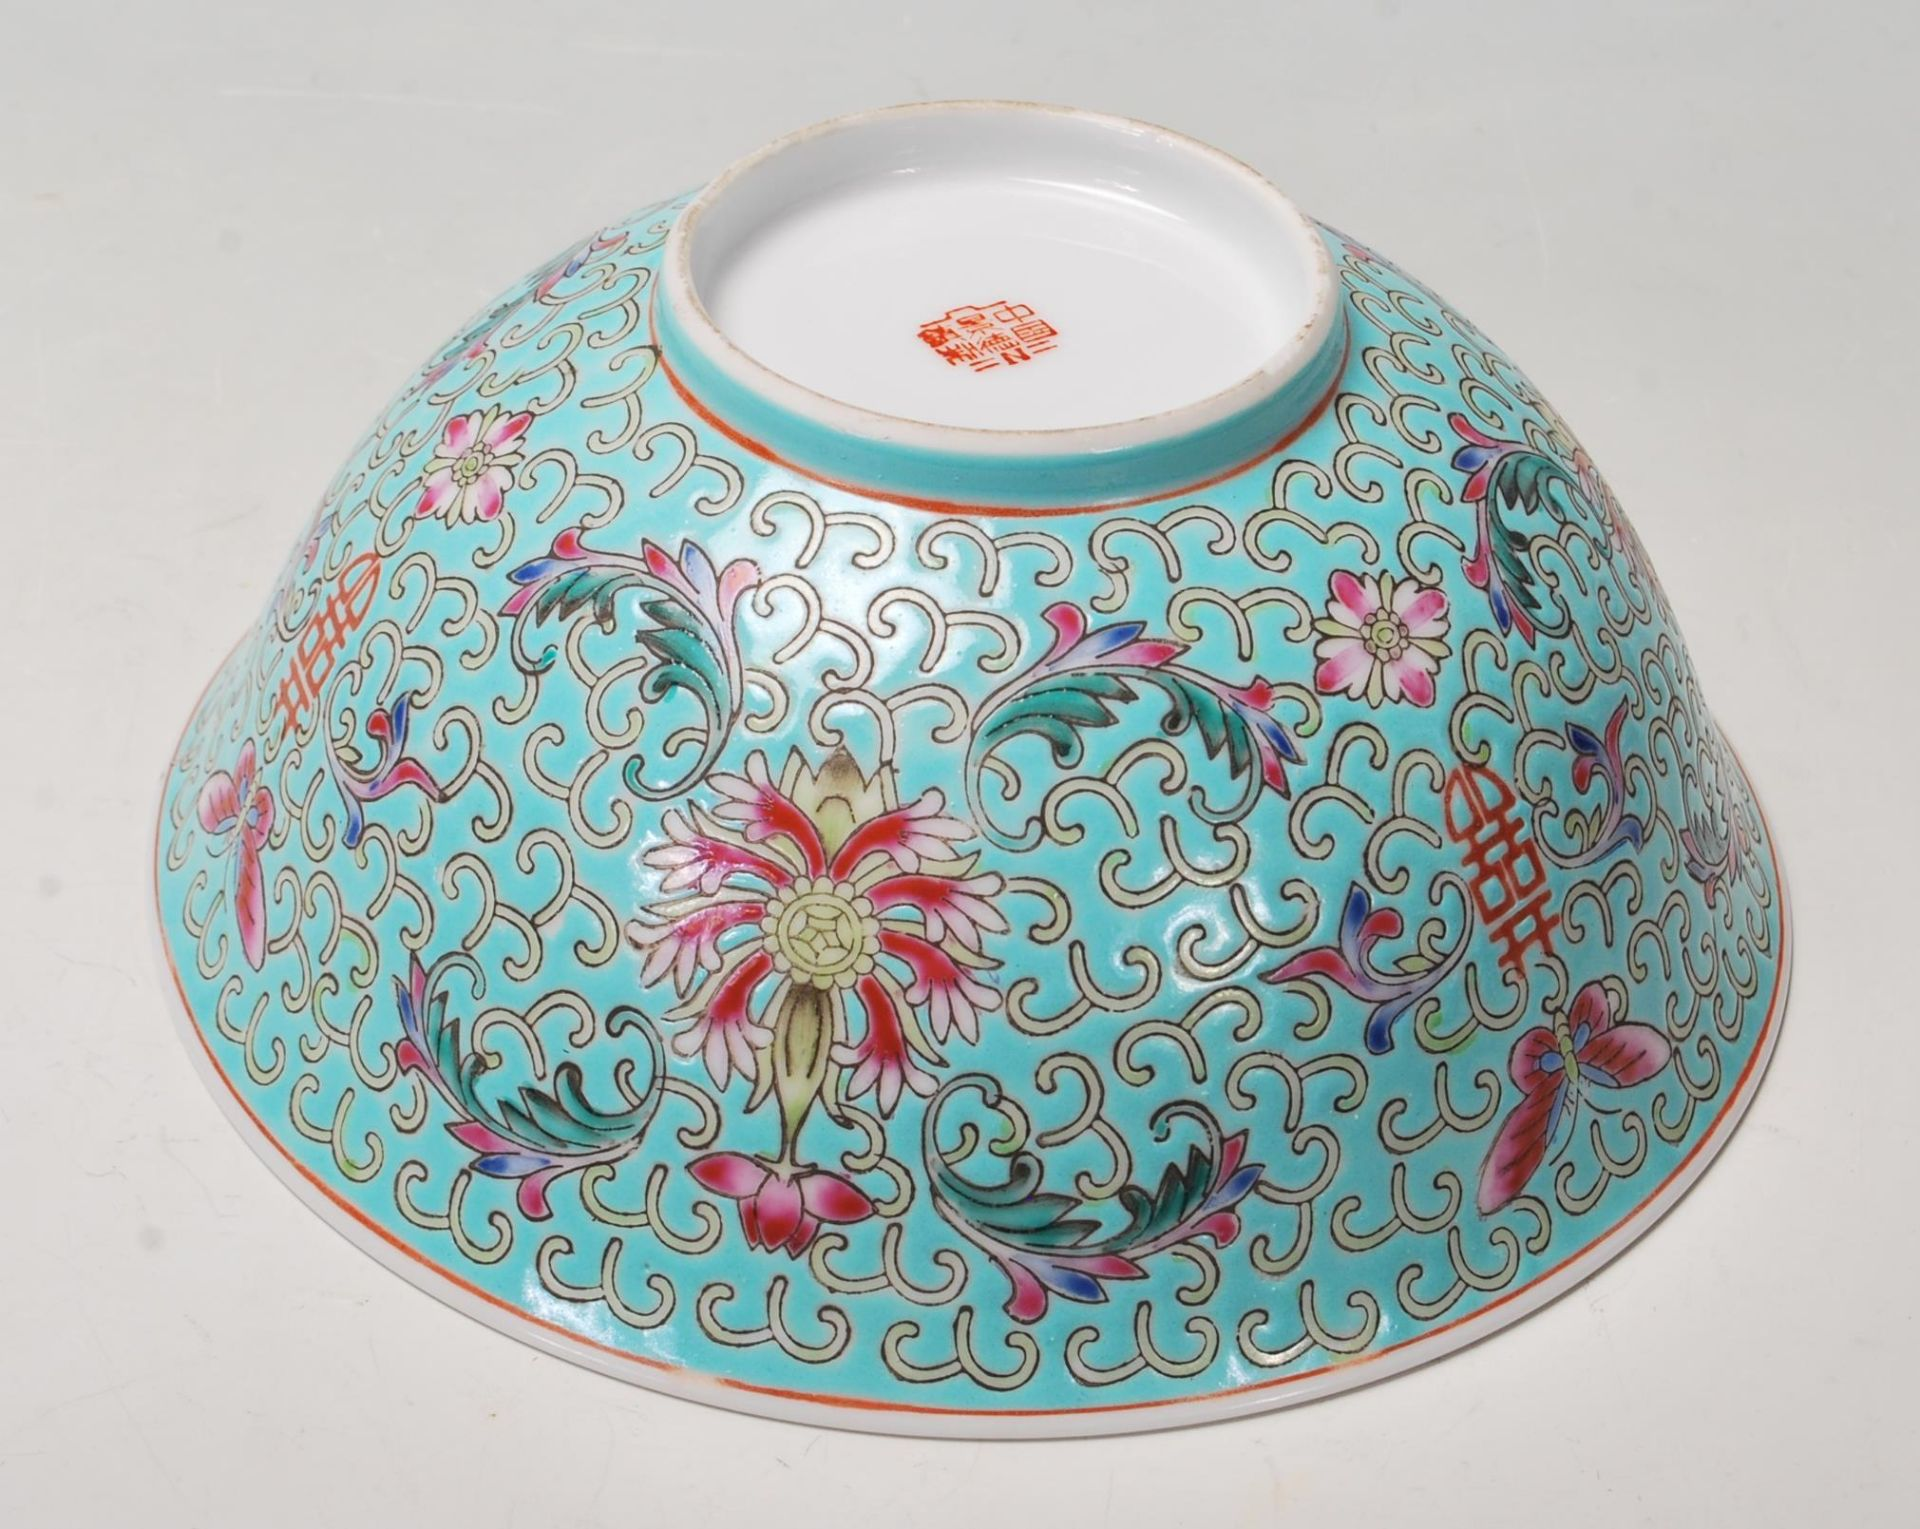 Los 76 - A vintage 20th Century Chinese bowl decorated with floral, butterfly and Shou emblem designs on a